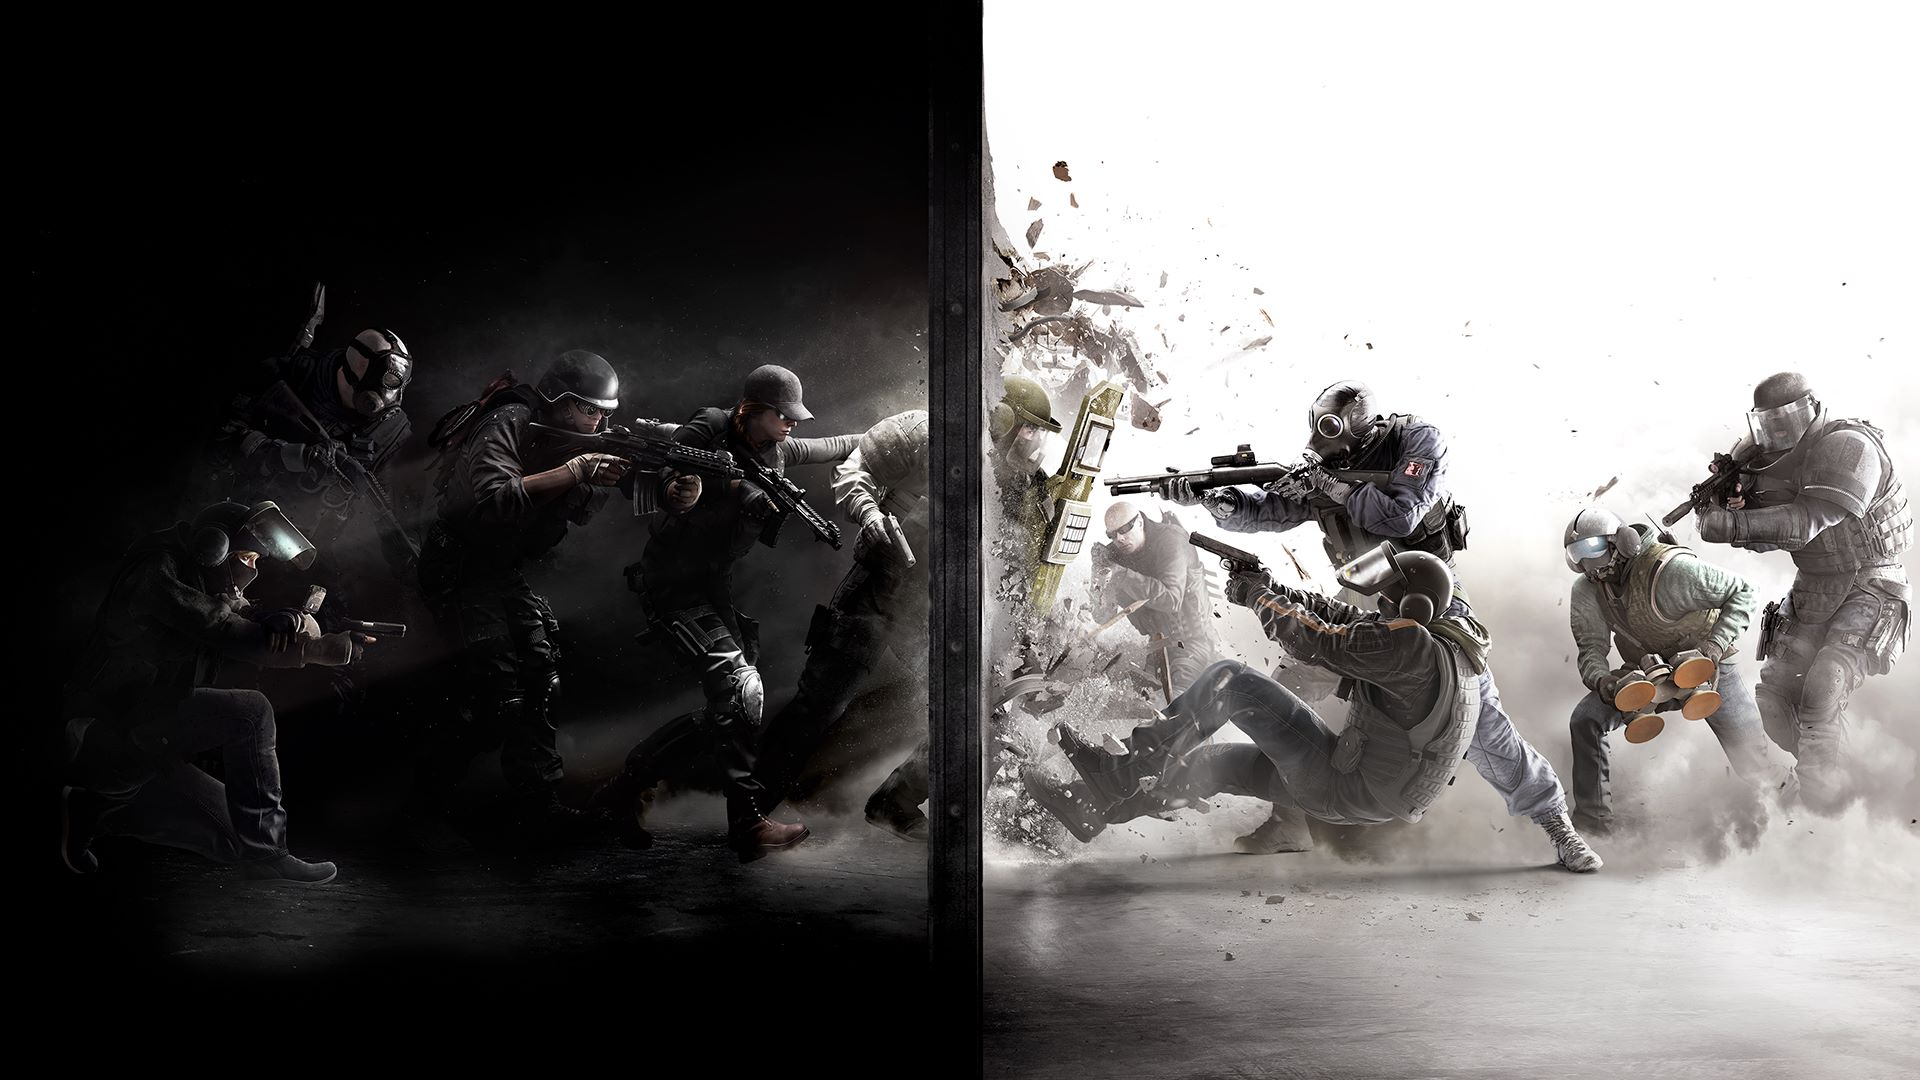 General 1920x1080 Rainbow 6: Siege military game art video game art